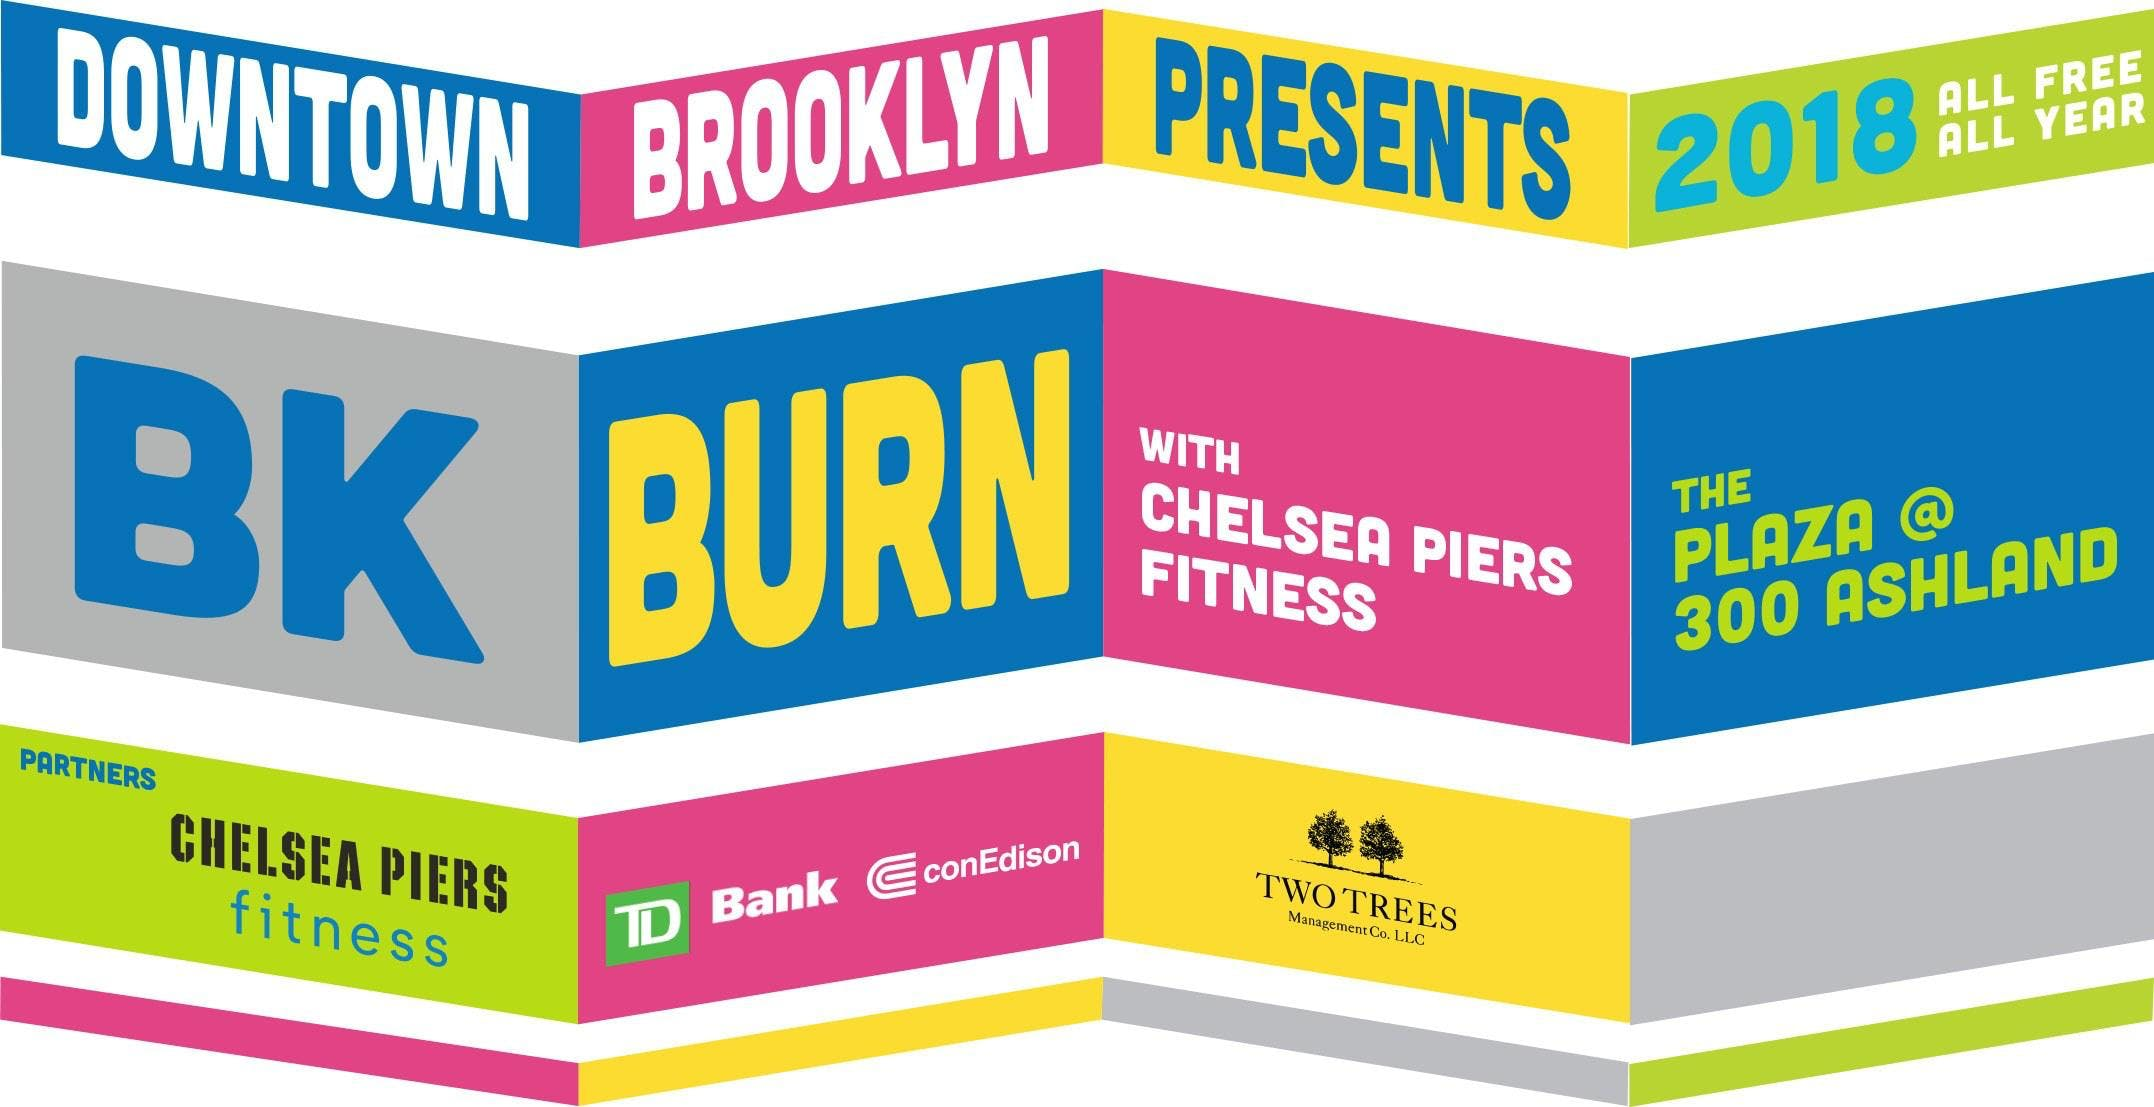 Downtown Brooklyn Presents BK Burn with Chelsea Piers Fitness